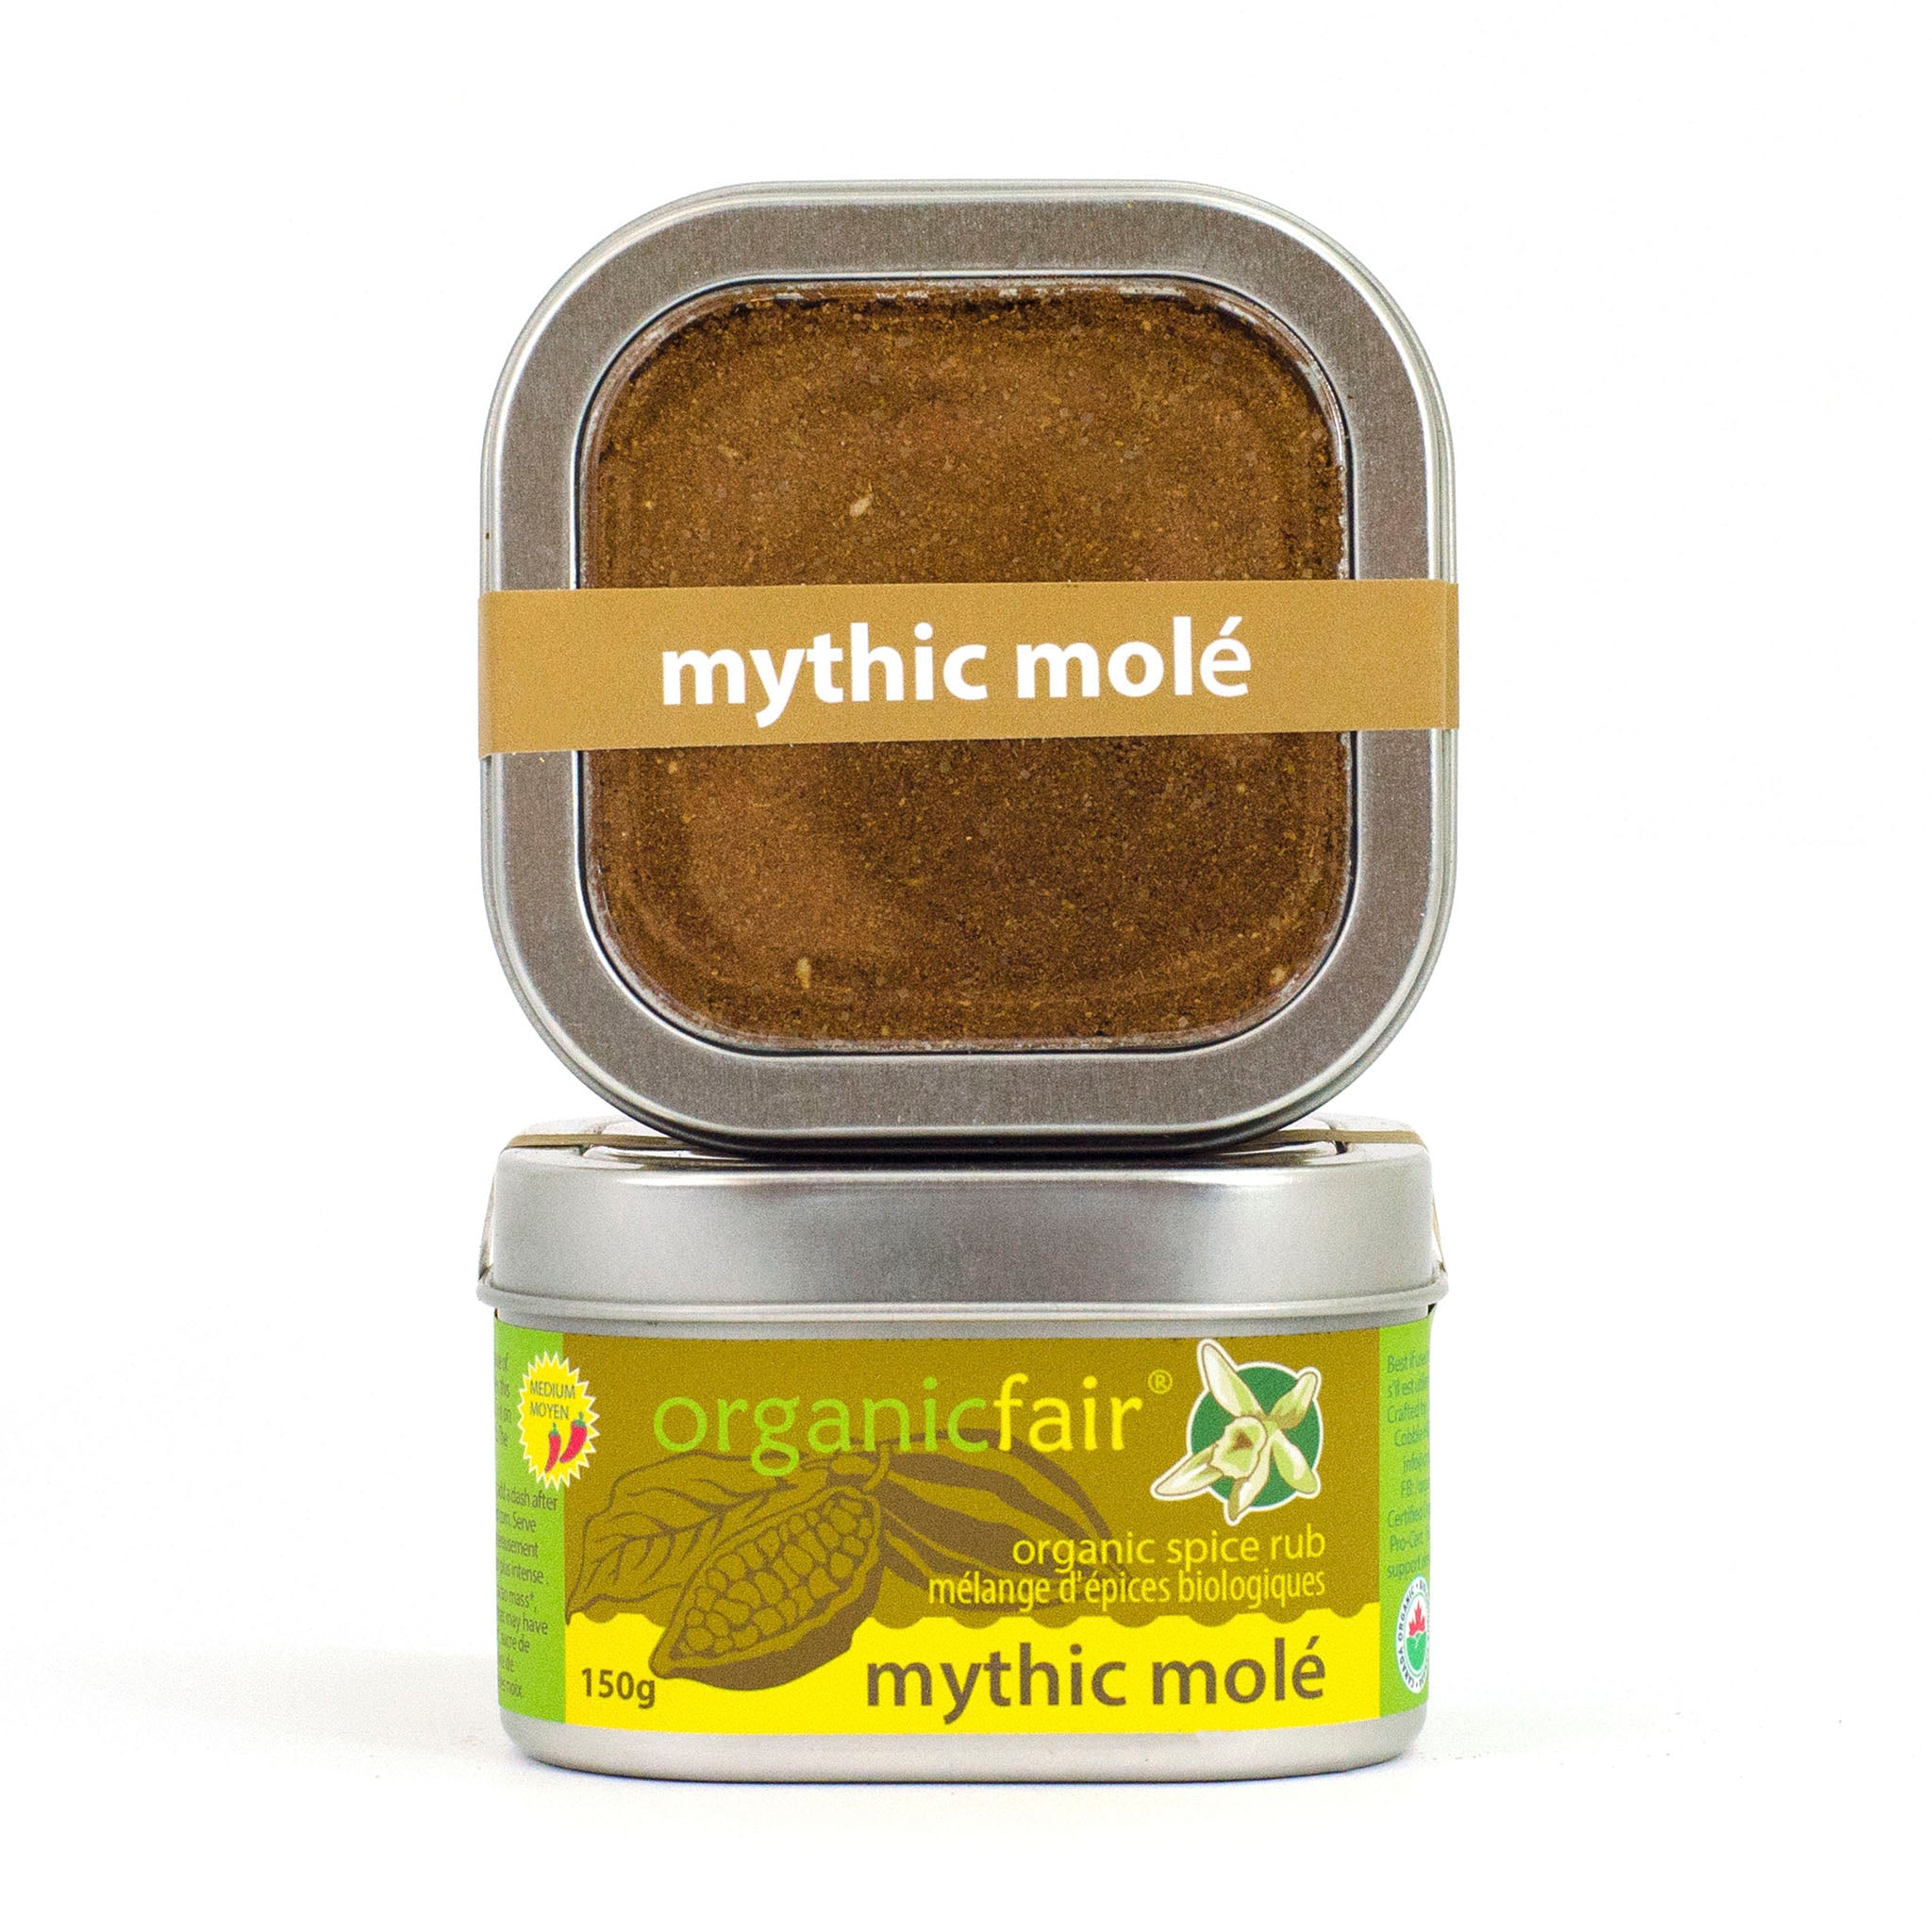 organicfair mythic mole spice rub tin